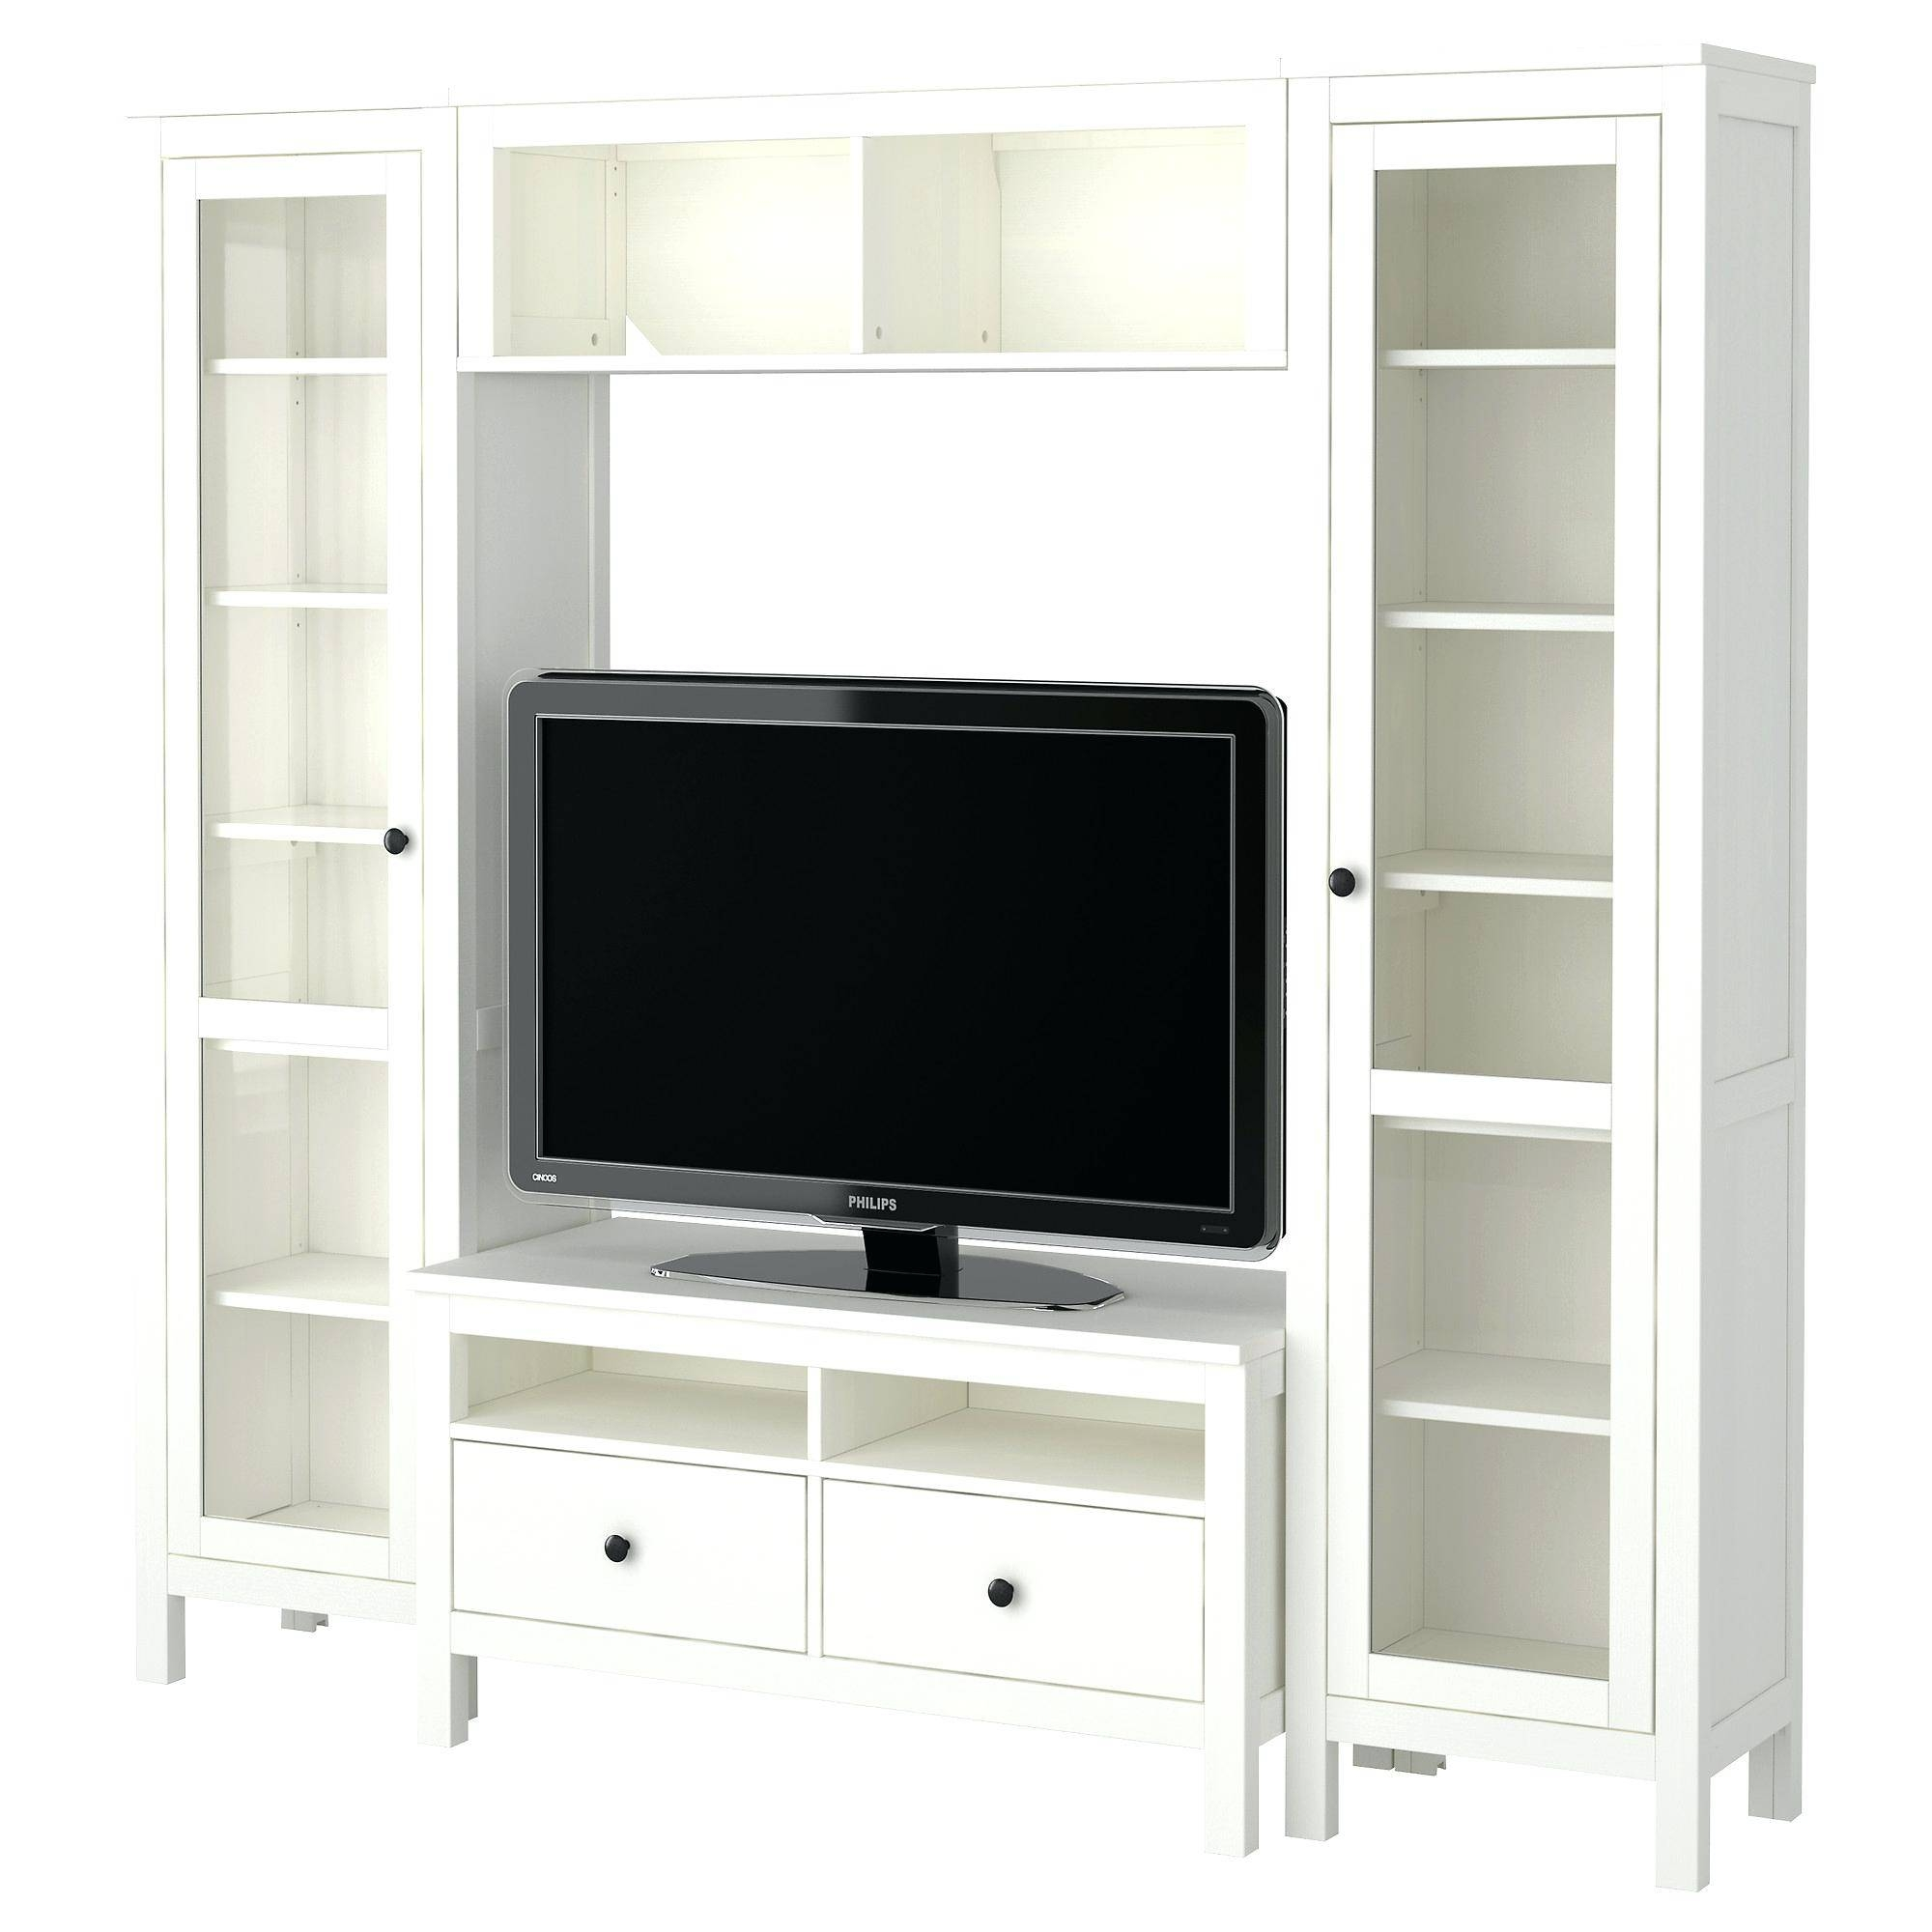 Tv Stand : 59 Furniture Design Chic Splendid Ikea Glass Tv Stand Inside Glass Fronted Tv Cabinet (View 12 of 15)